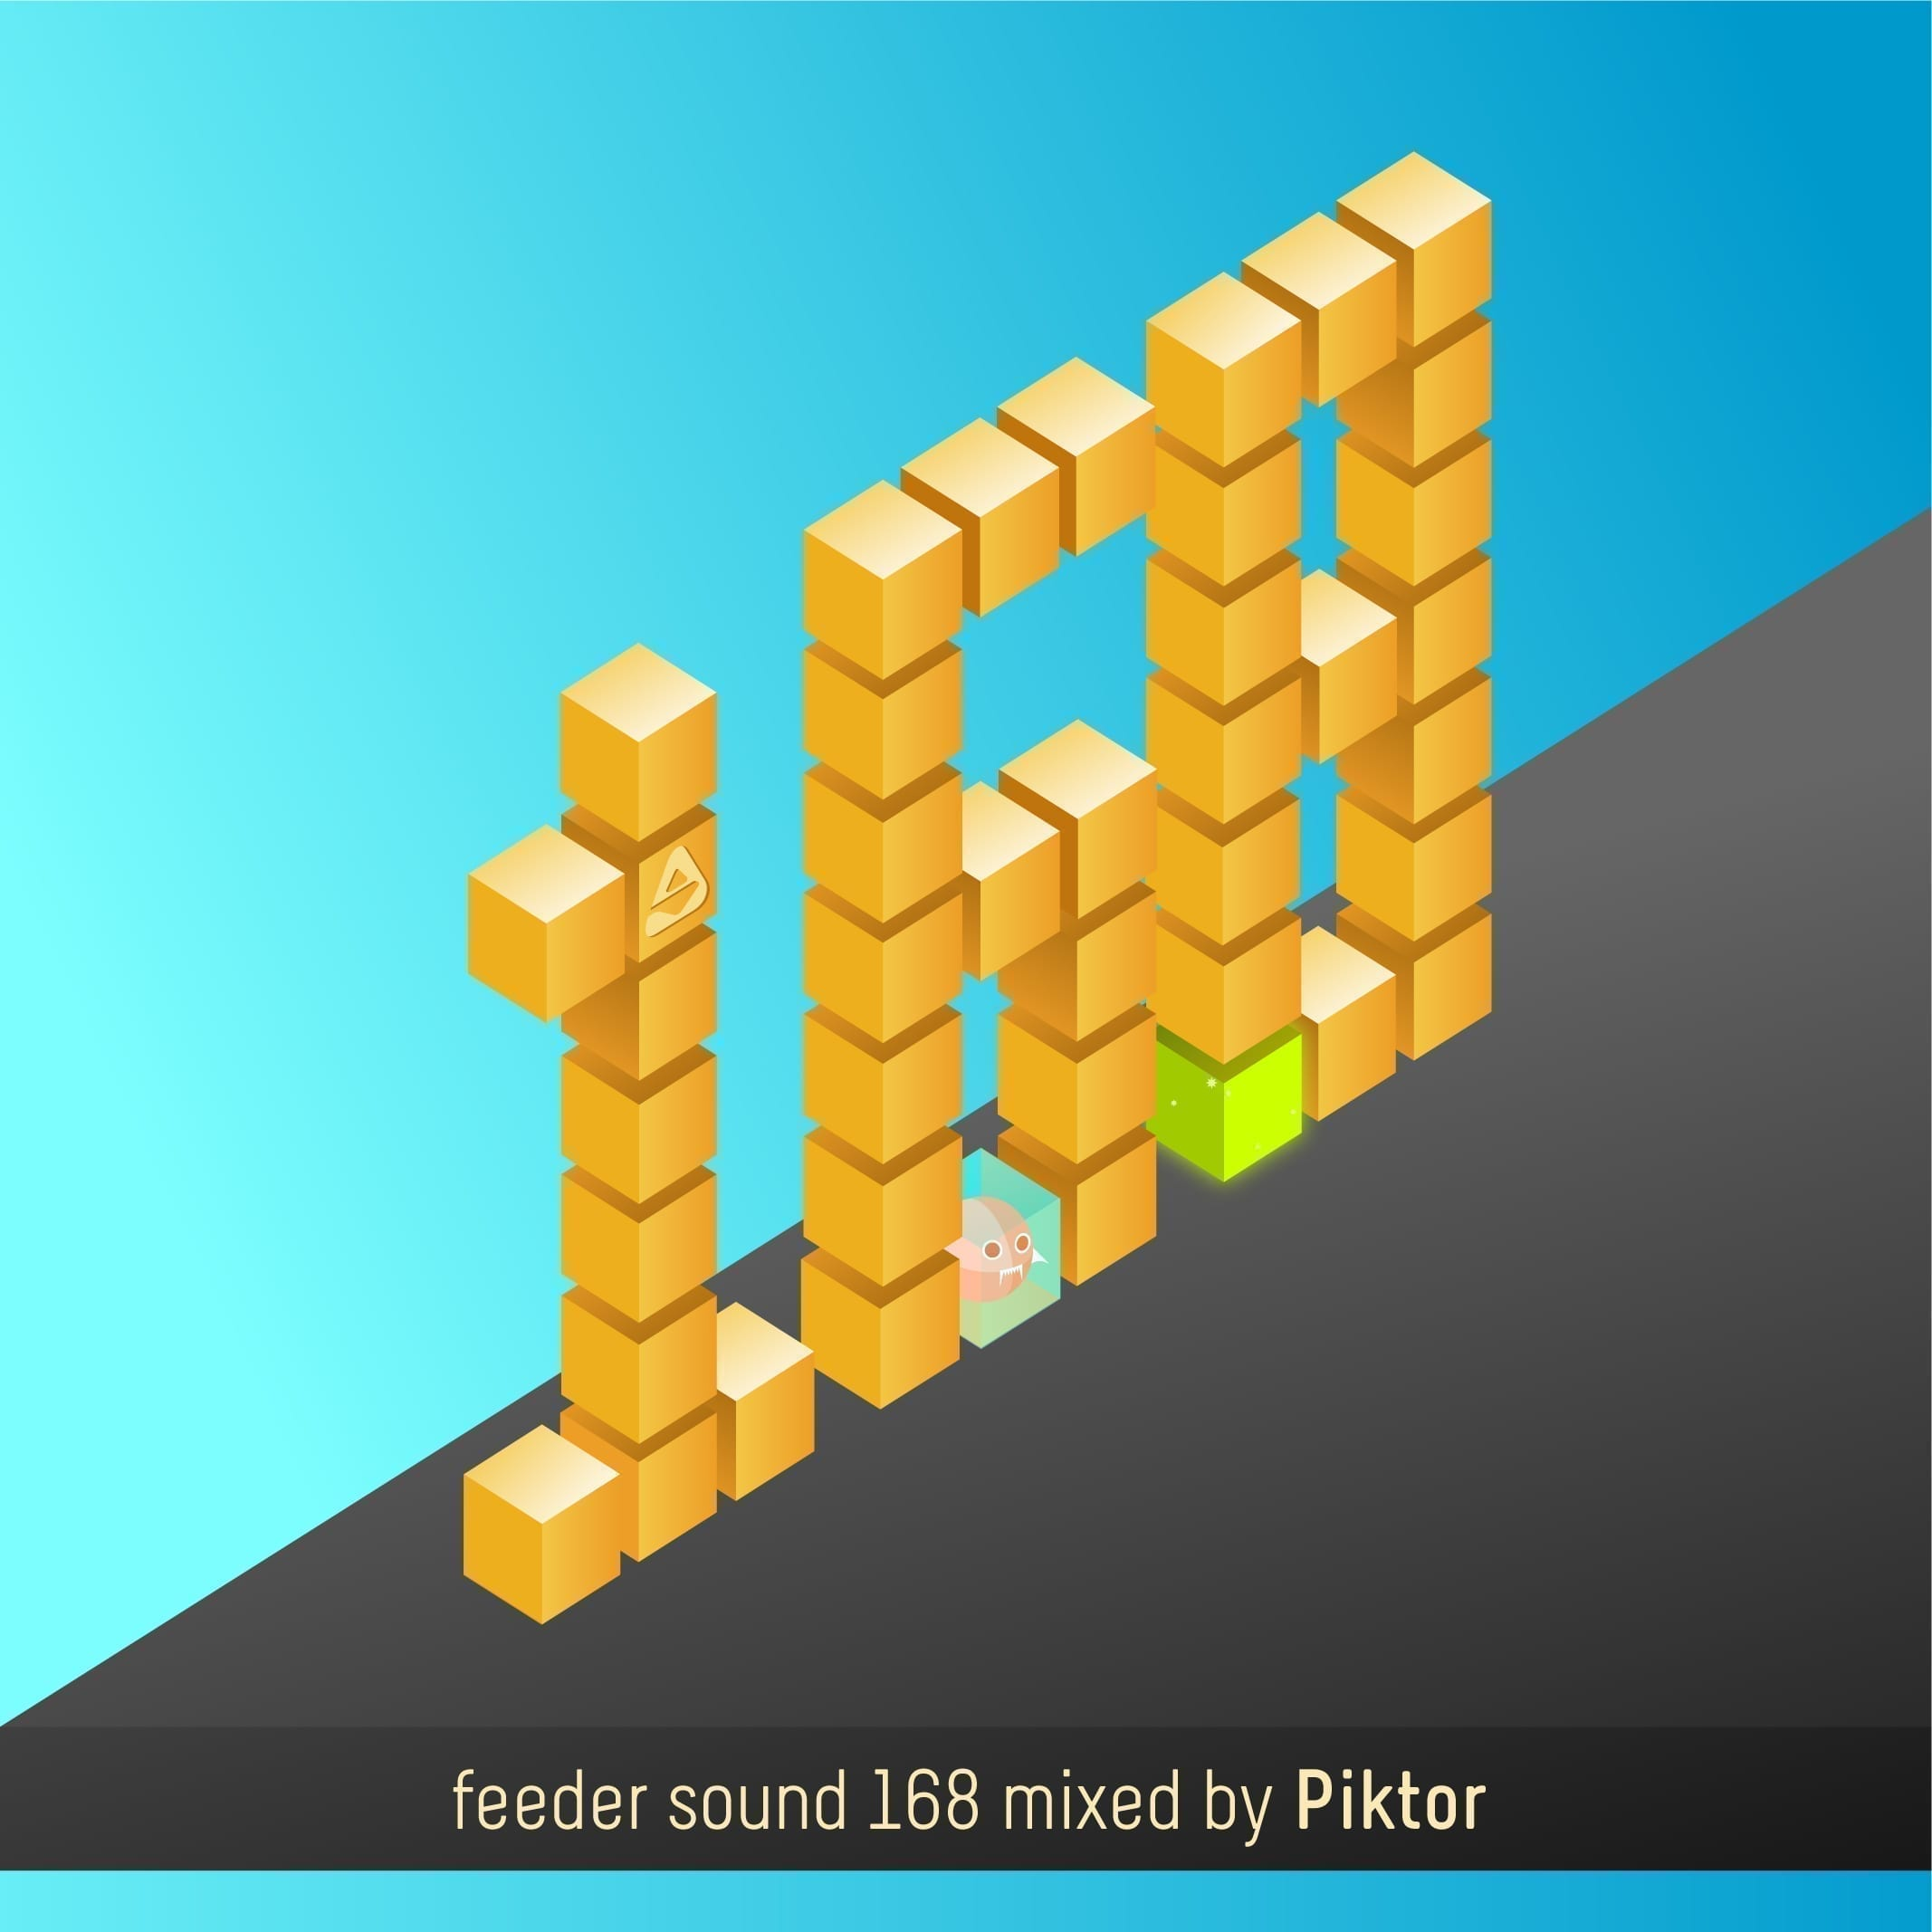 feeder sound 168 mixed by Piktor